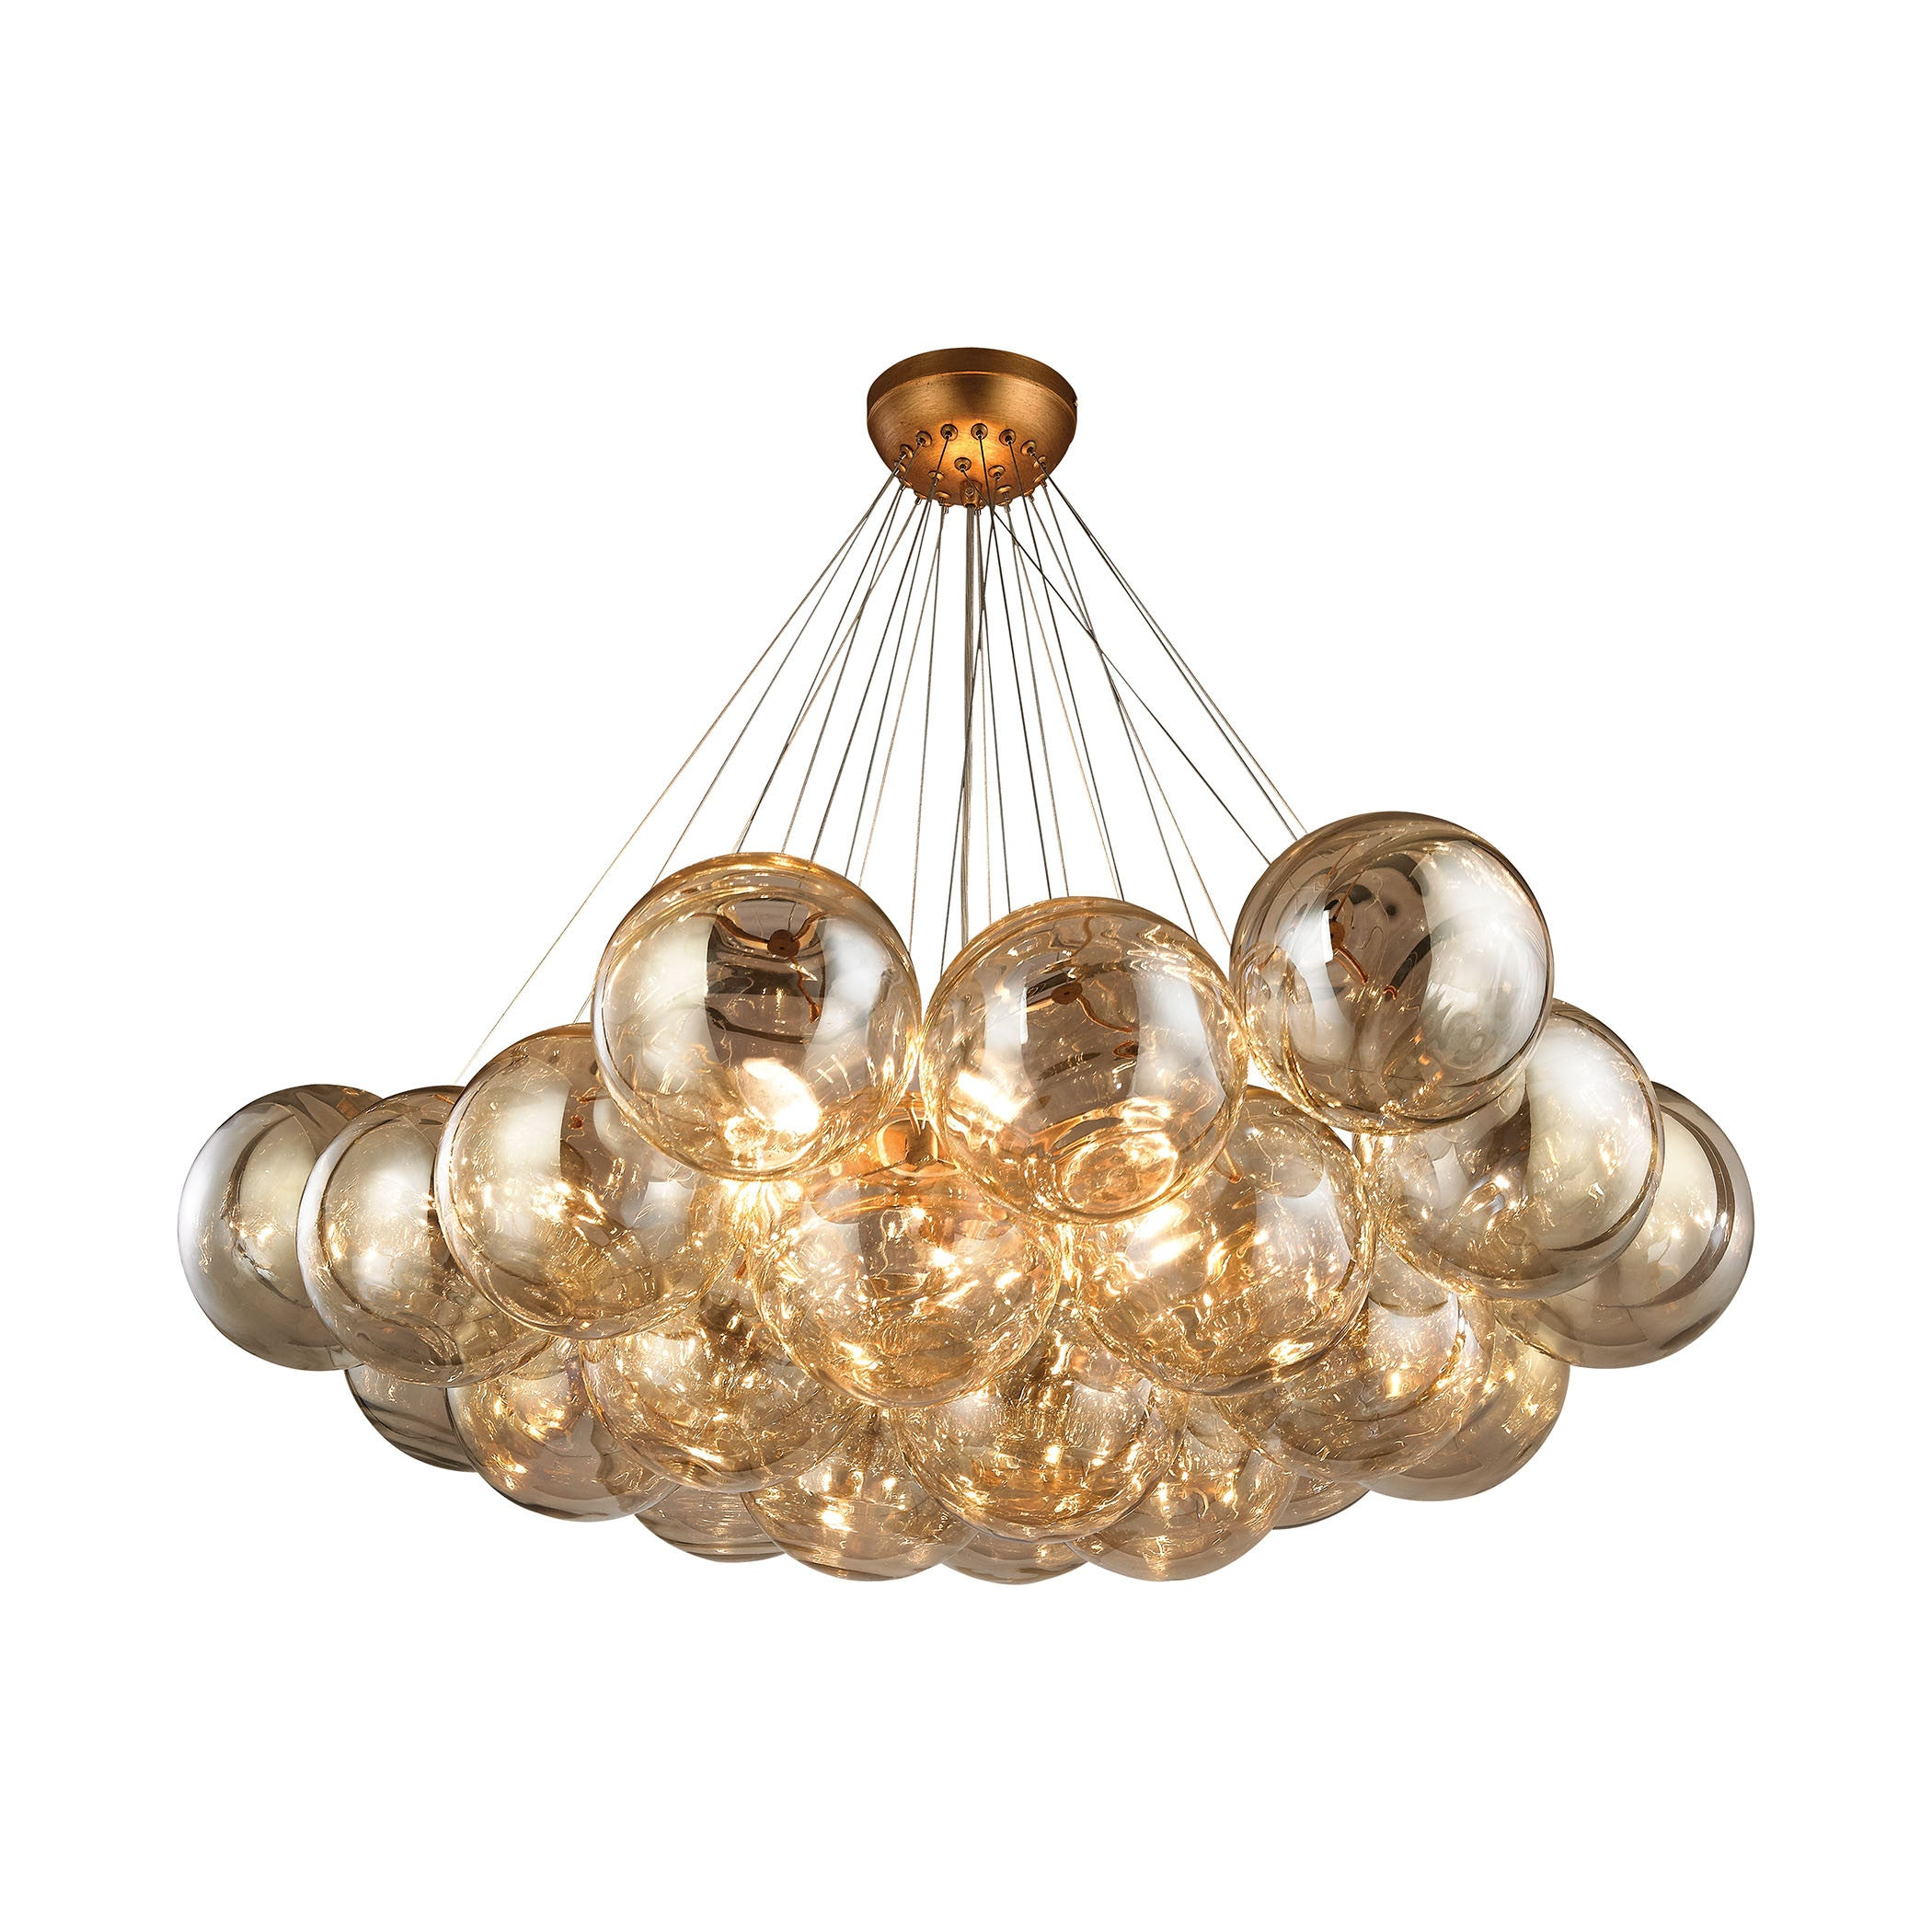 Cielo Antique Gold Leaf Finish with Clear Glass by Diamond Lighting, 1140-011